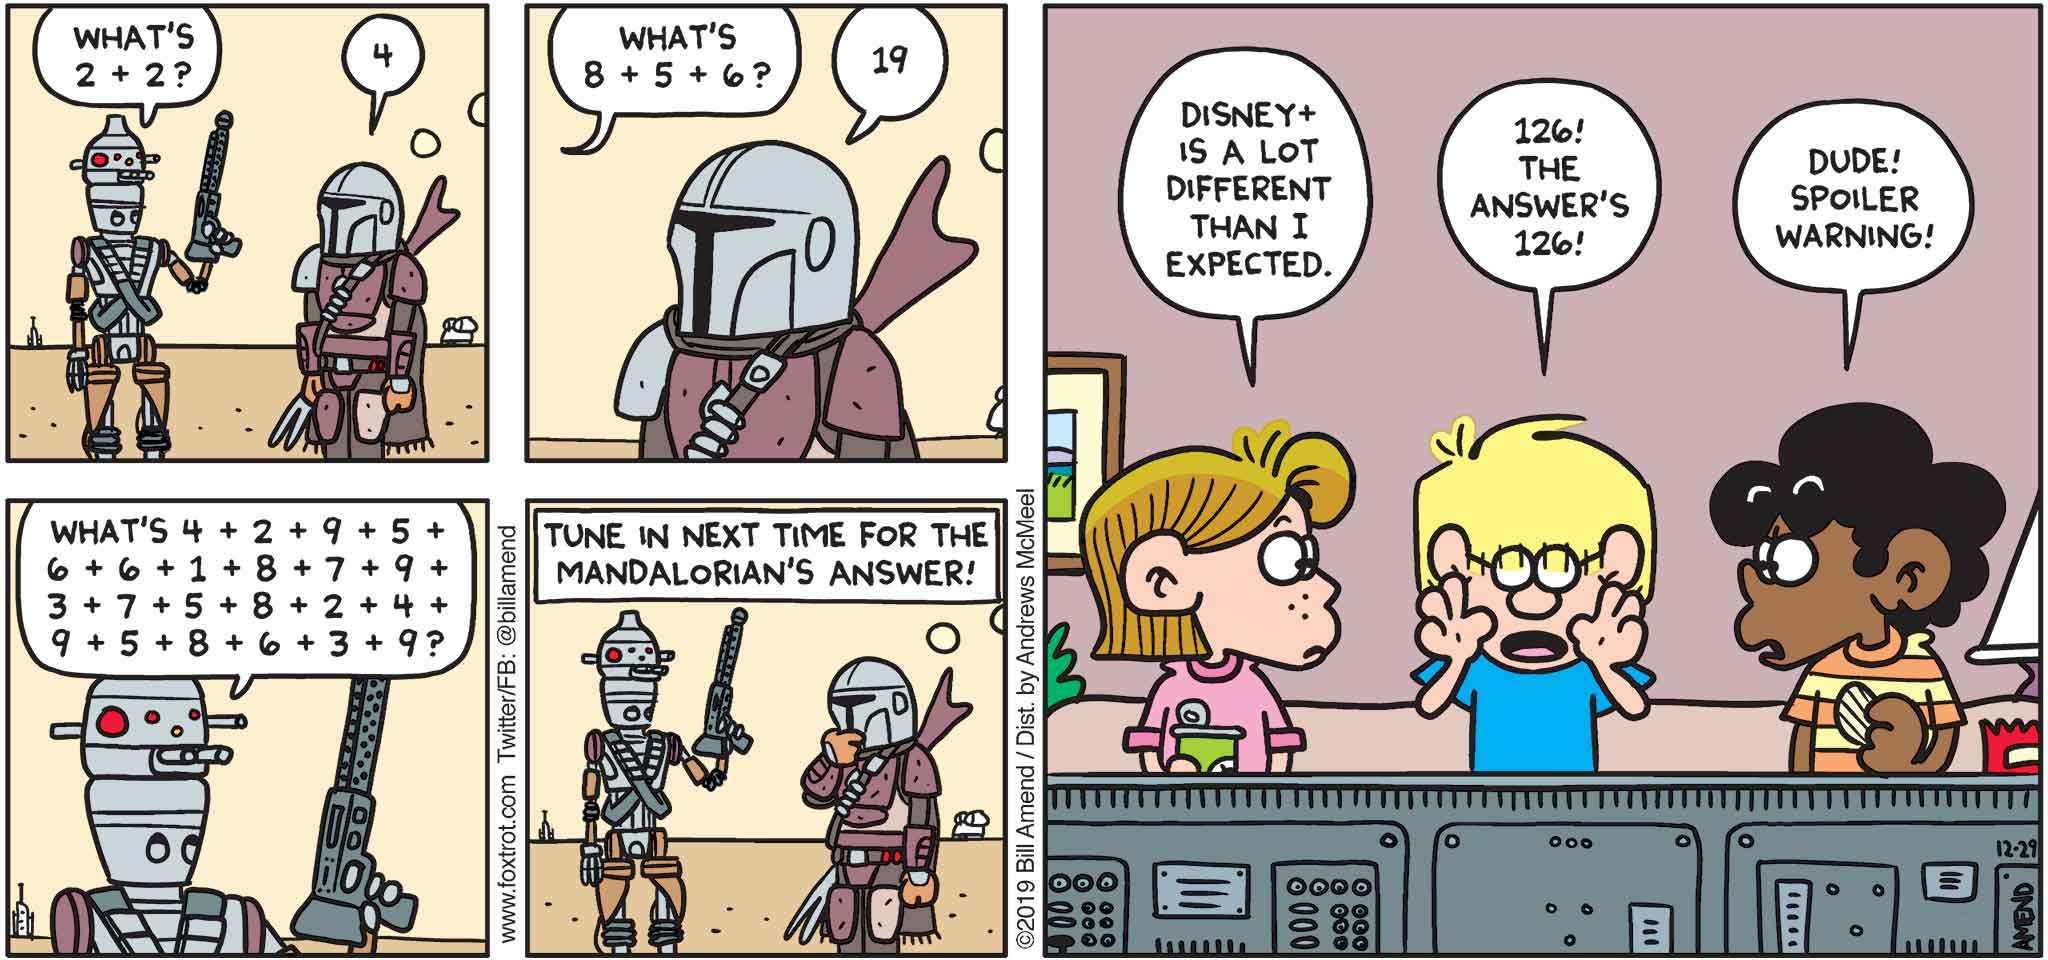 "FoxTrot by Bill Amend - ""Disney+"" published December 29, 2019 - IG-11: What's 2+2? Mandalorian: 4. IG-11: What's 8+5+6? Mandalorian: 19. IG-11: What's 4+2+9+5+6+6+1+8+7+9+3+7+5+8+2+4+9+5+8+6+3+9? Narrator: Tune in next time for The Mandalorian's answer! Eileen: Disney+ is a lot different that I expected. Jason: 126! The answer's 126! Marcus: Dude! Spoiler warning!"